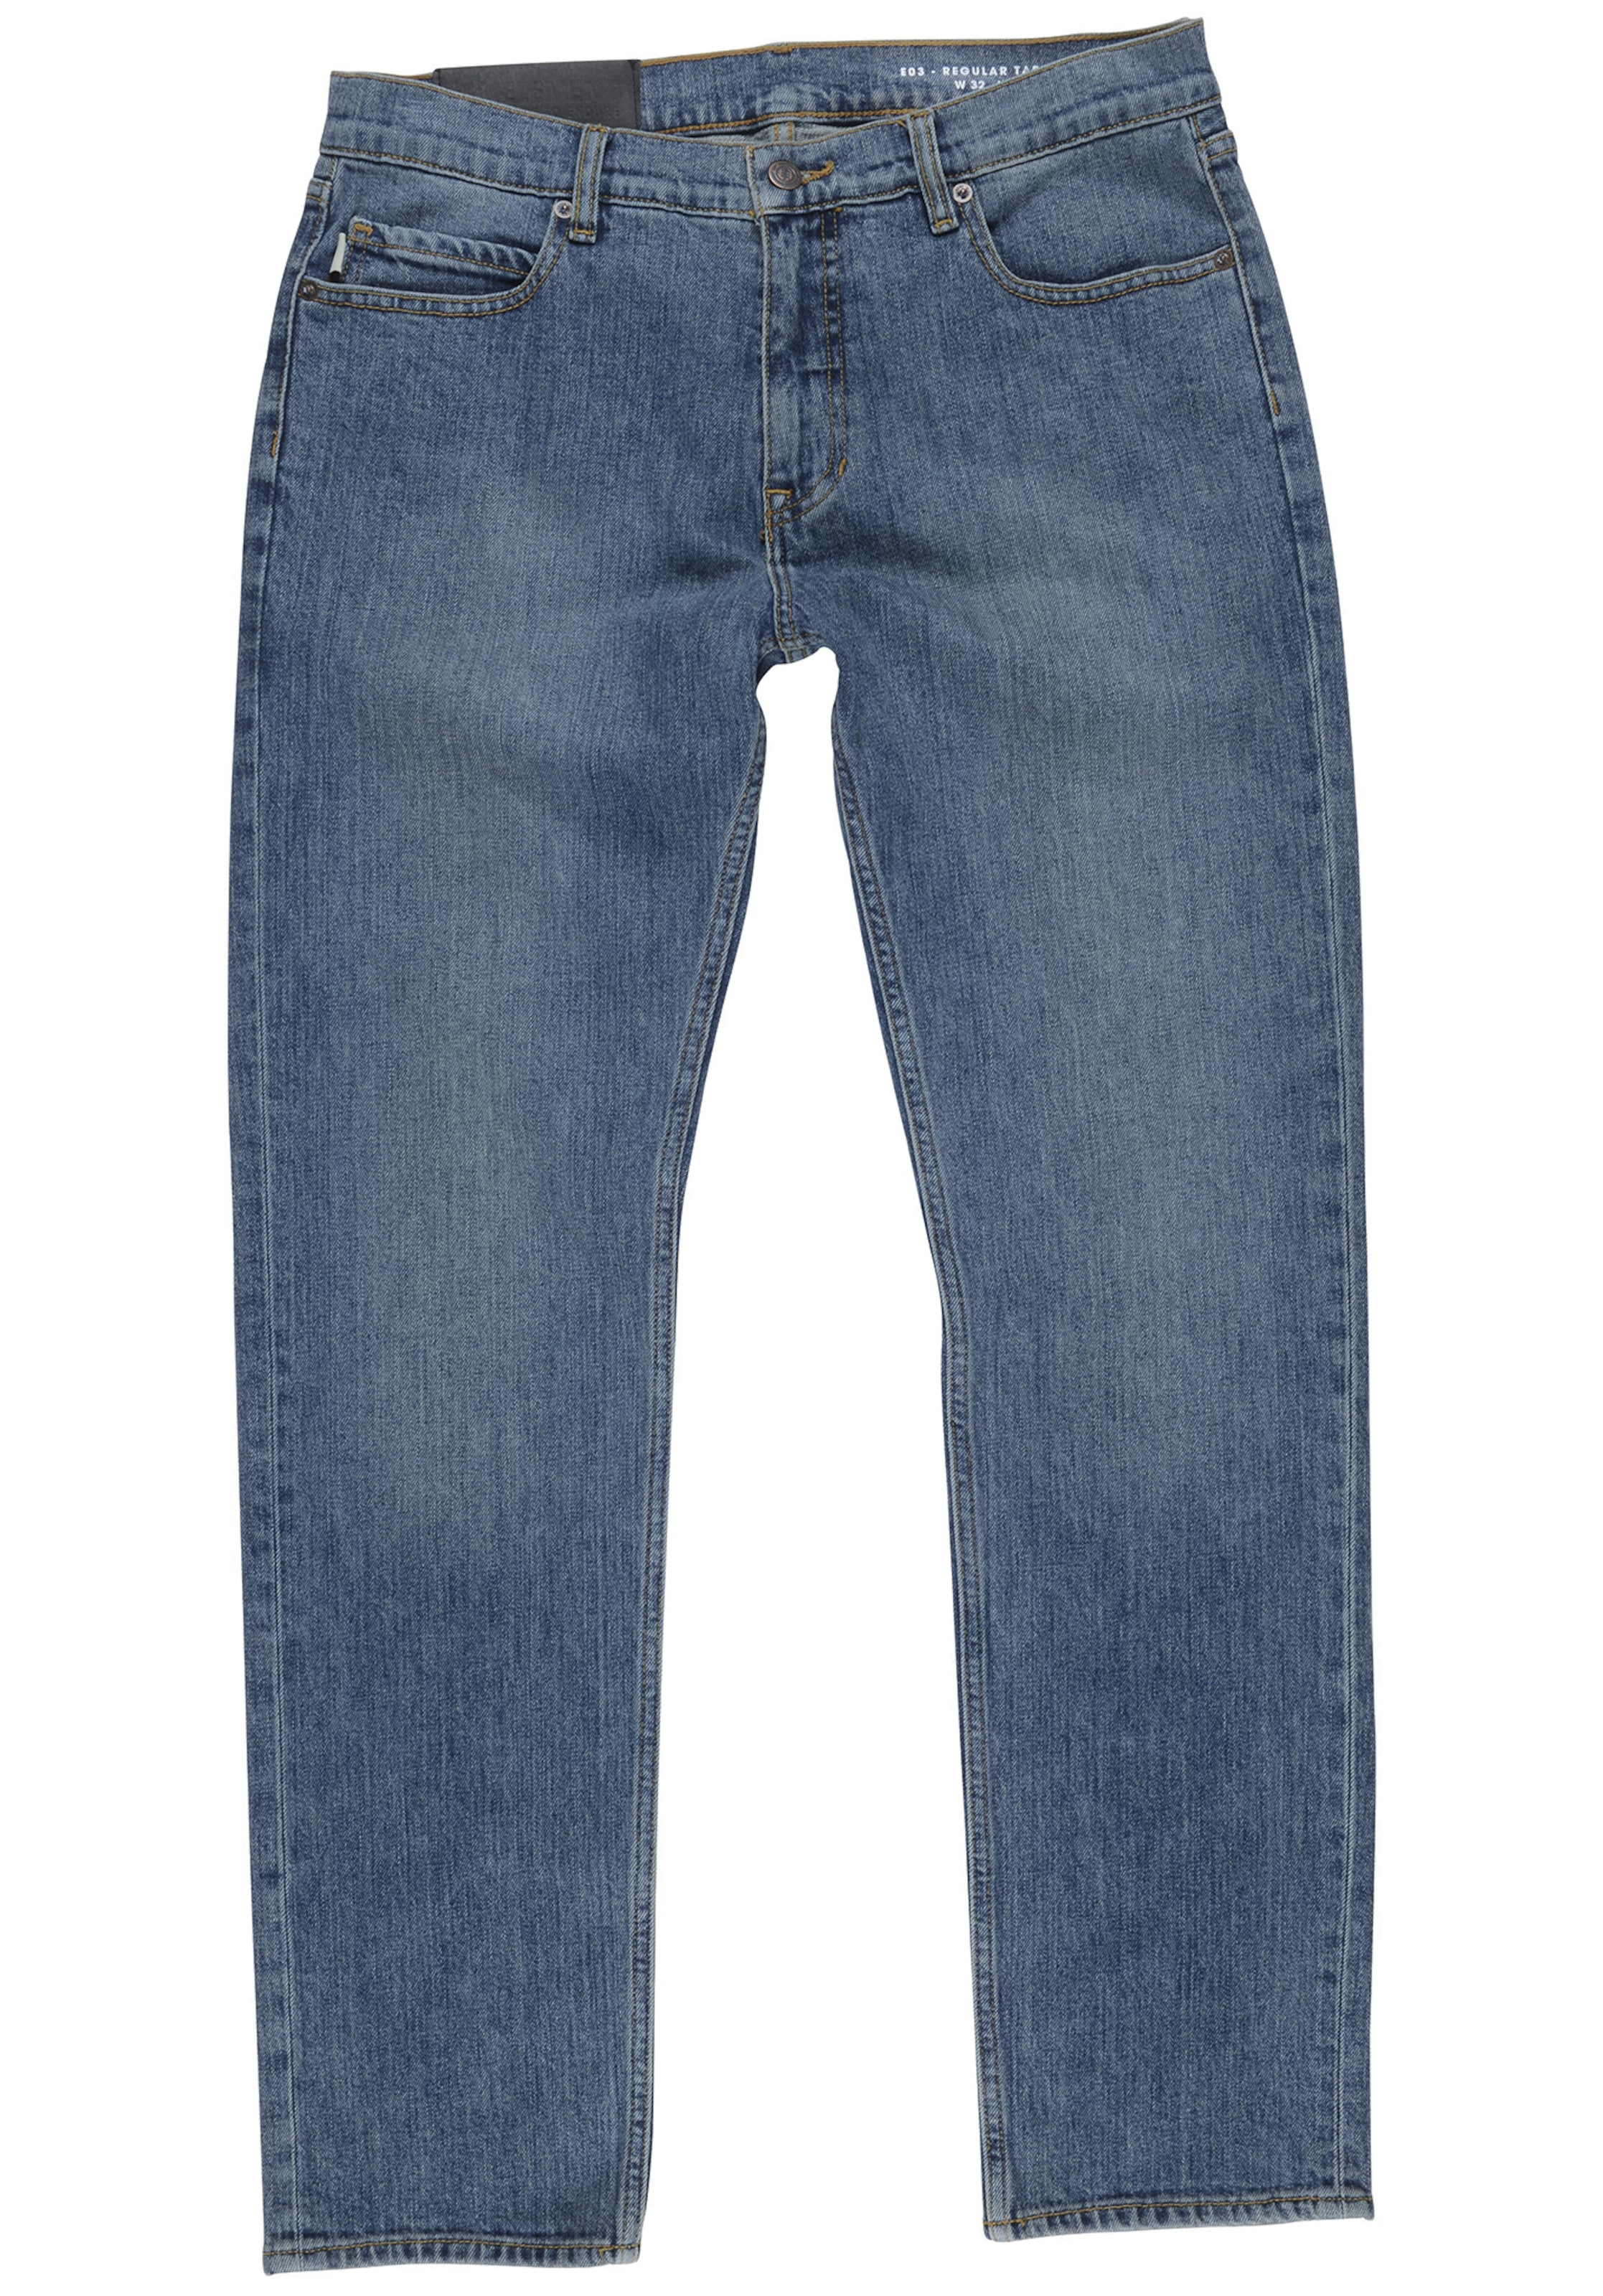 Hose 'e03' Element In Blue Denim zVpqUSMG